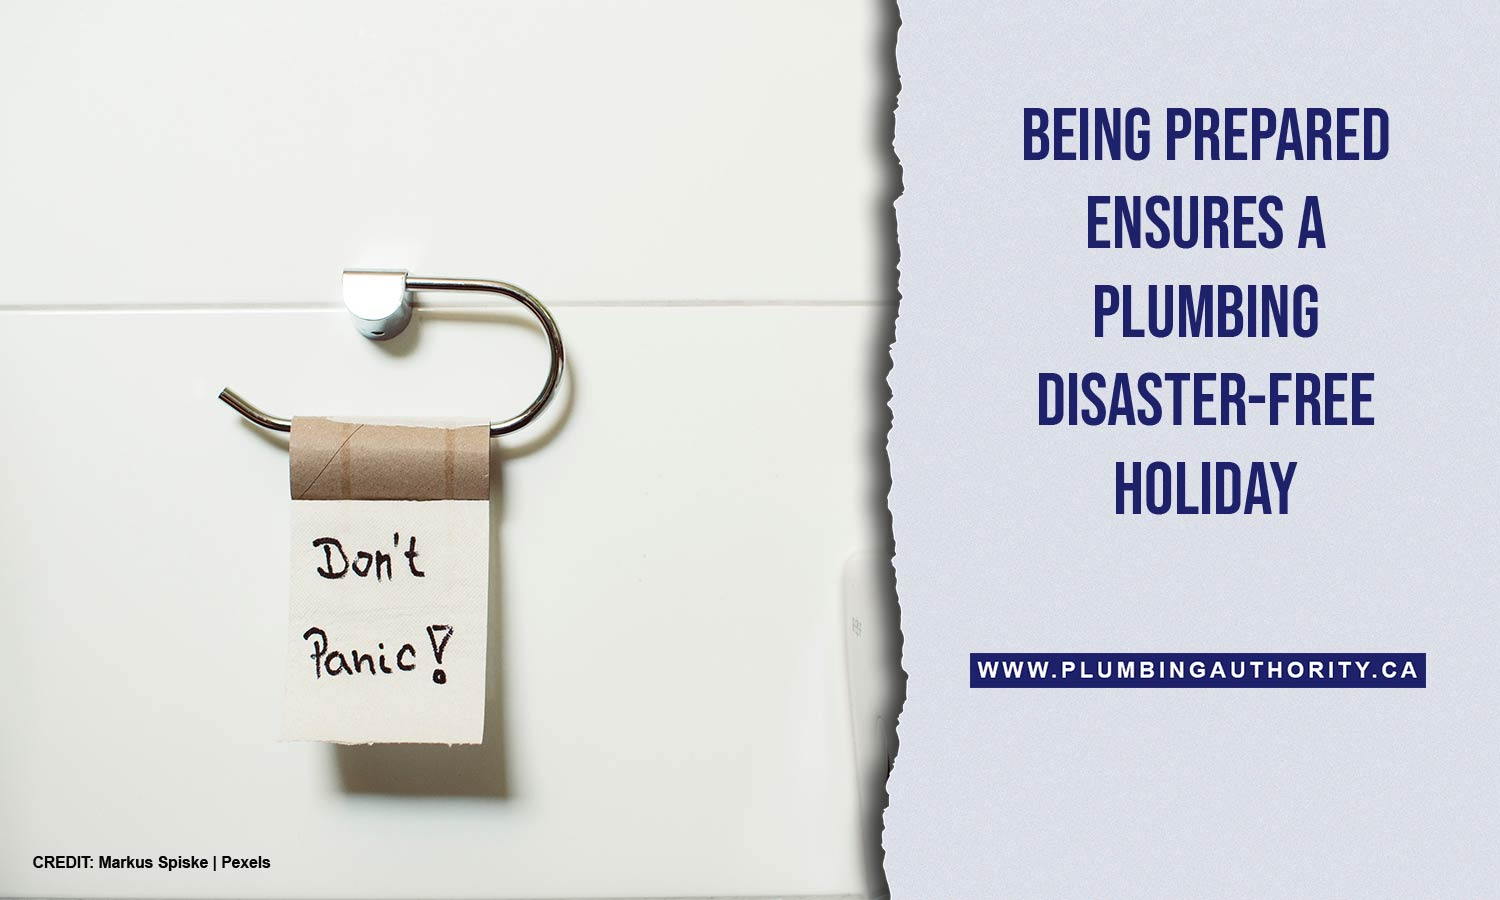 Being prepared ensures a plumbing disaster-free holiday